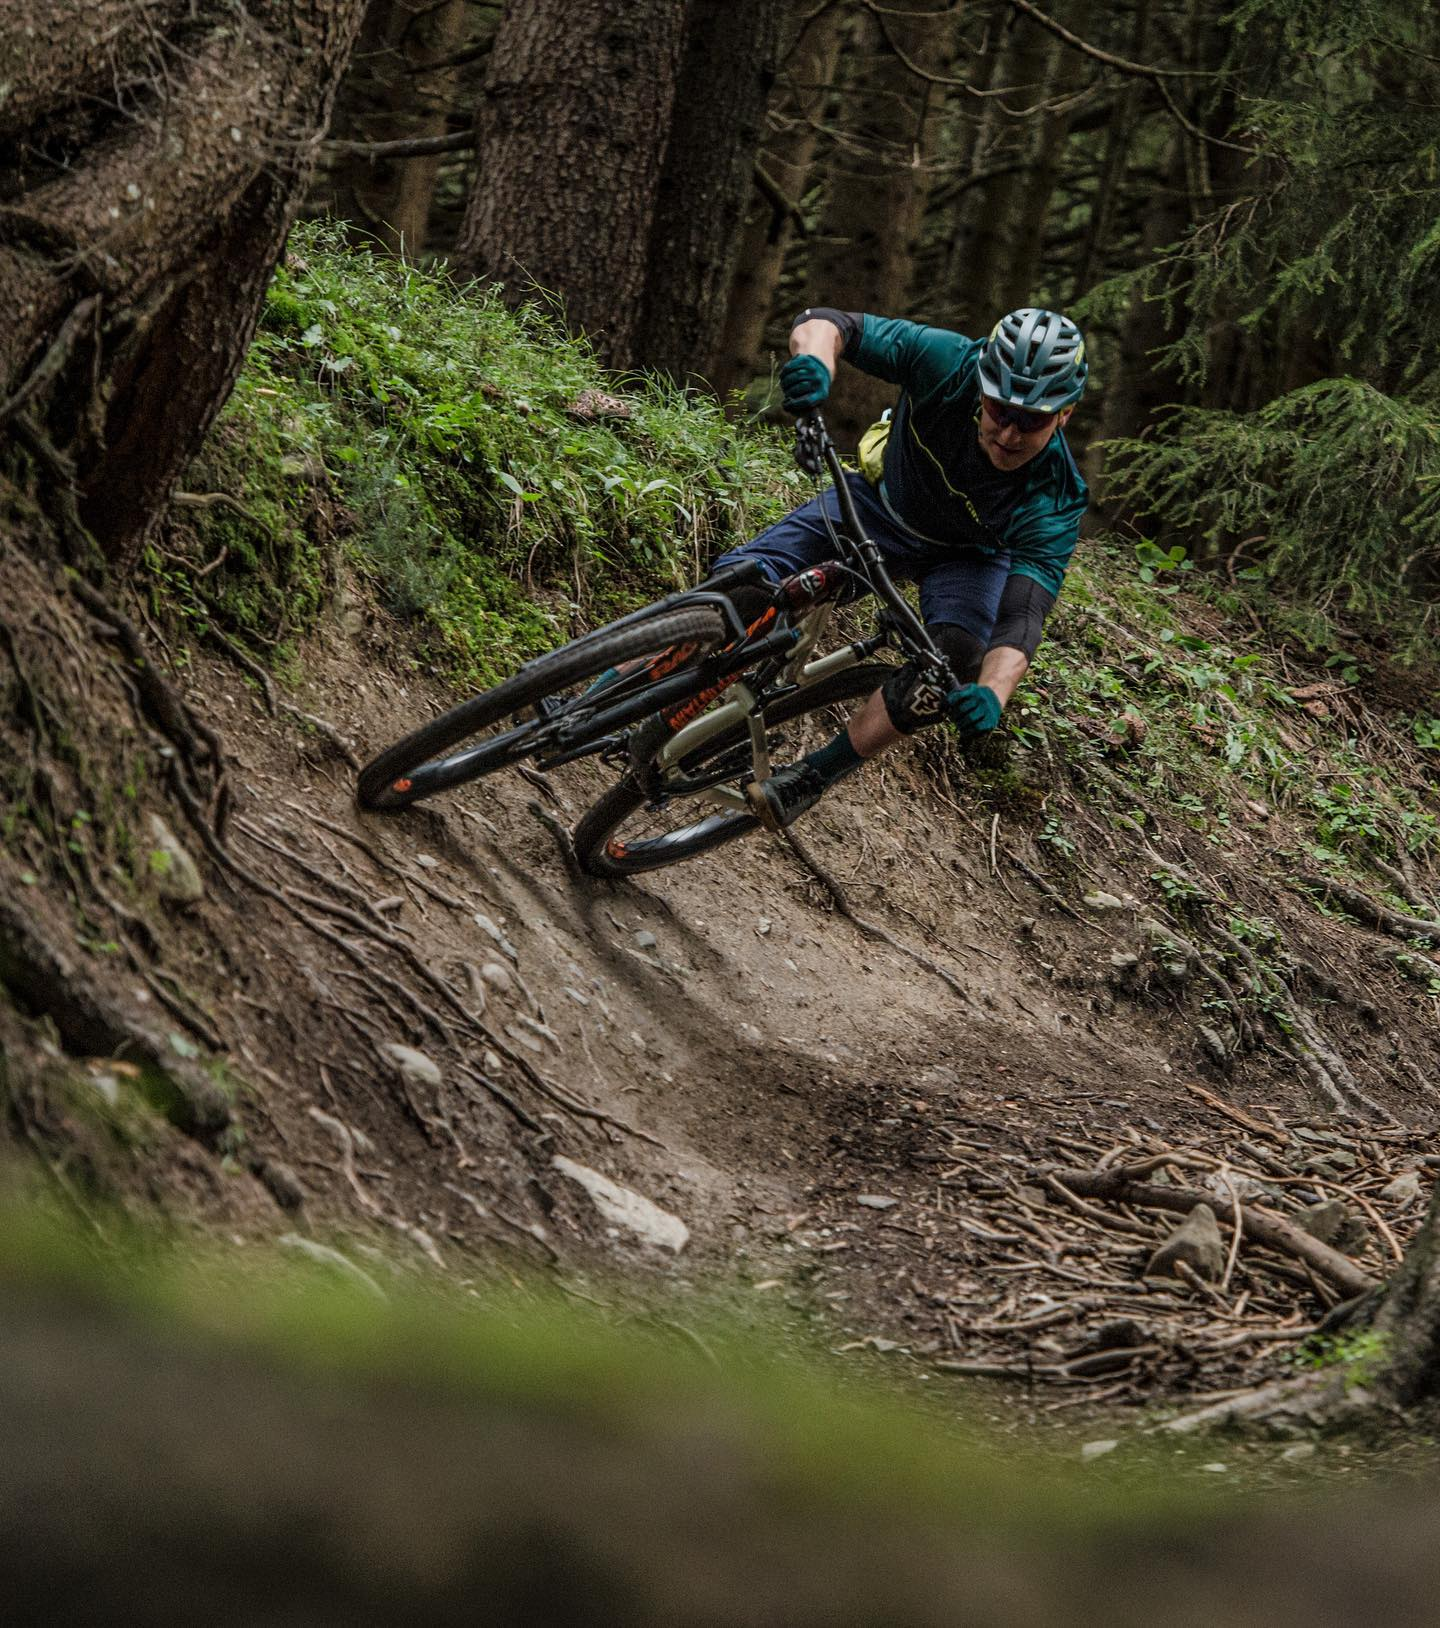 The @girocycling Radix Mips helmet in action... captured by @egelmairphotography in difficult light on a difficult trail in difficult conditions. . . .